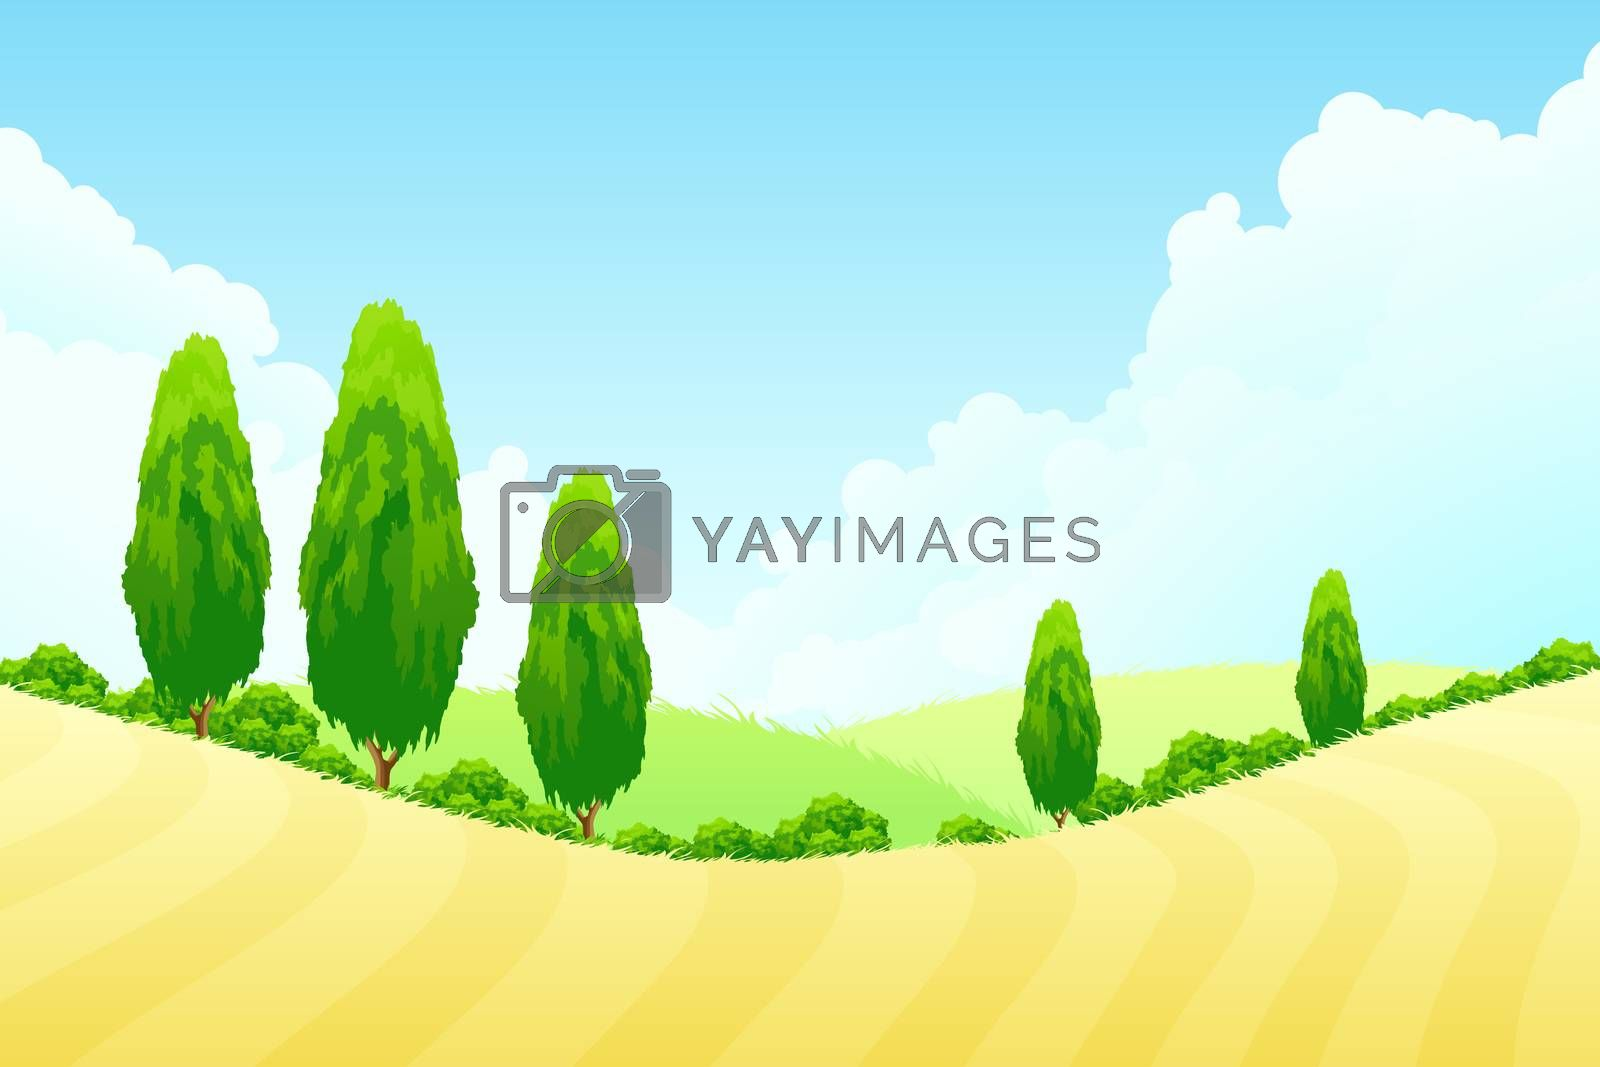 Landscape with Green trees by WaD